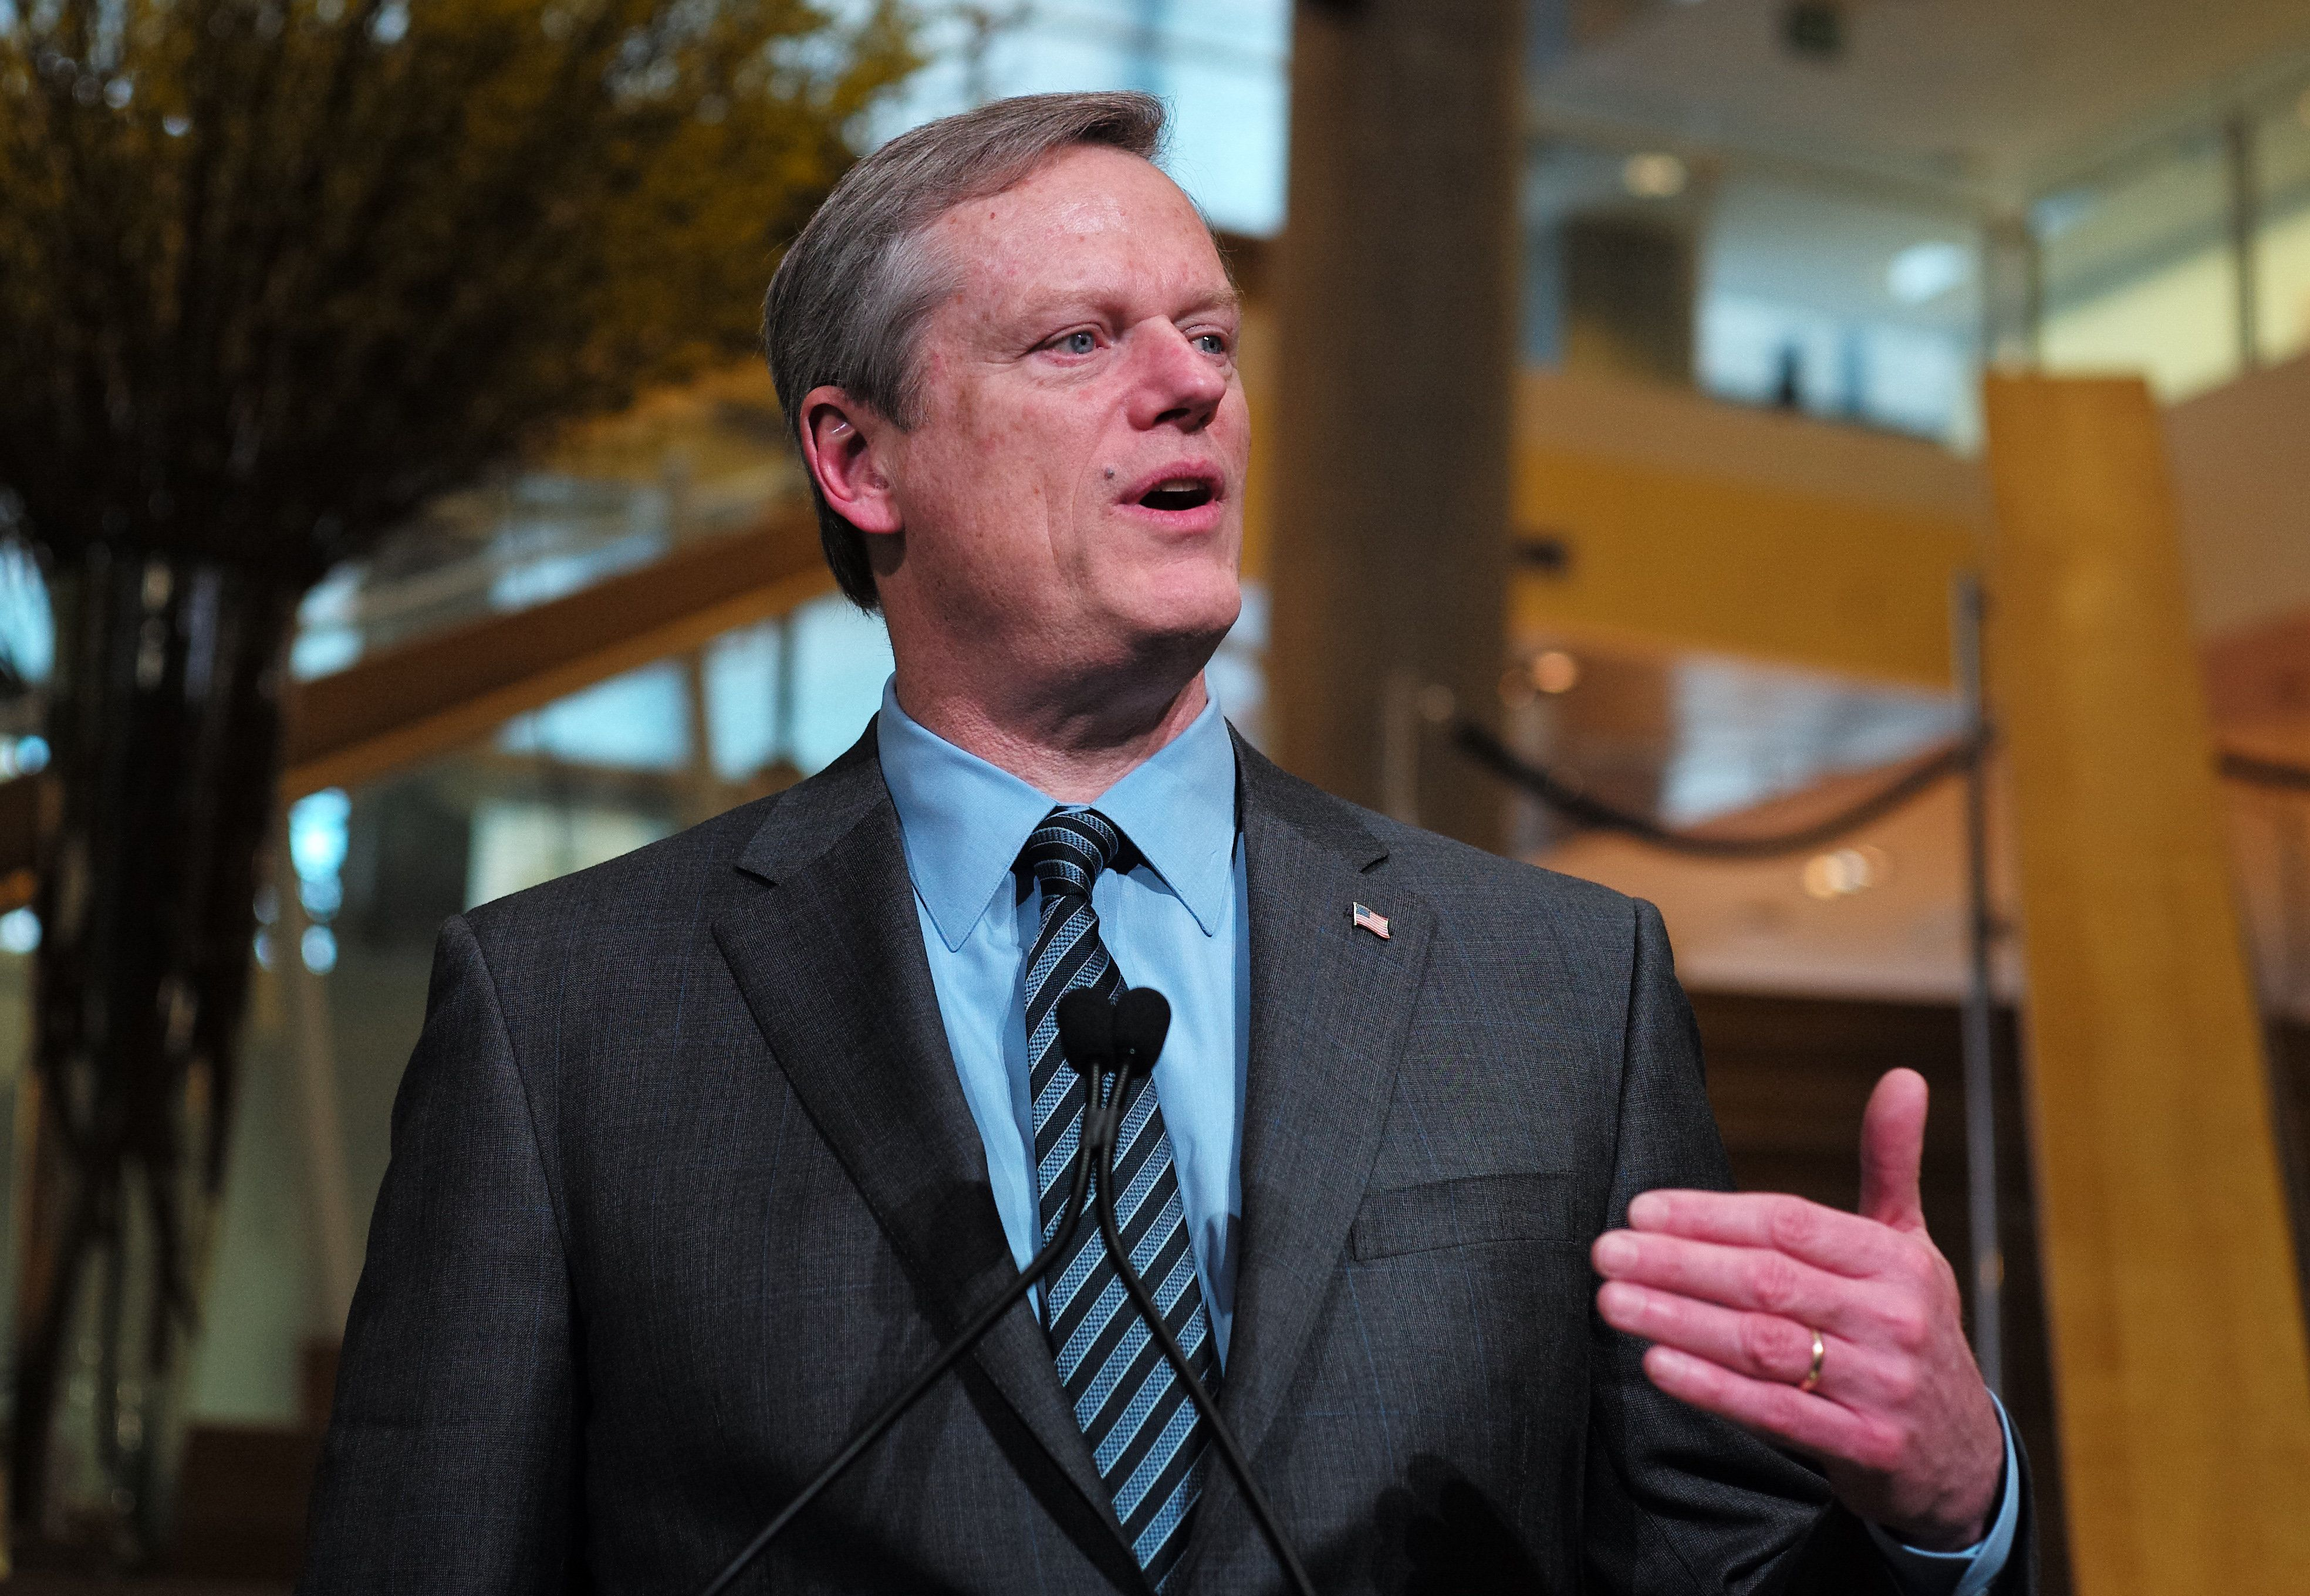 CAMBRIDGE , MA - FEBRUARY 28: Massachusetts Governor Charlie Baker delivers remarks during a tribute to biotechnology executive Henri A. Termeer in Cambridge, MA on Feb. 28, 2018. Termeer, who led Genzyme from 1983 to 2011 and died suddenly last May at the age of 71, was honored when Kendall Squares North Plaza was officially renamed Henri A. Termeer Square. (Photo by Jonathan Wiggs/The Boston Globe via Getty Images)